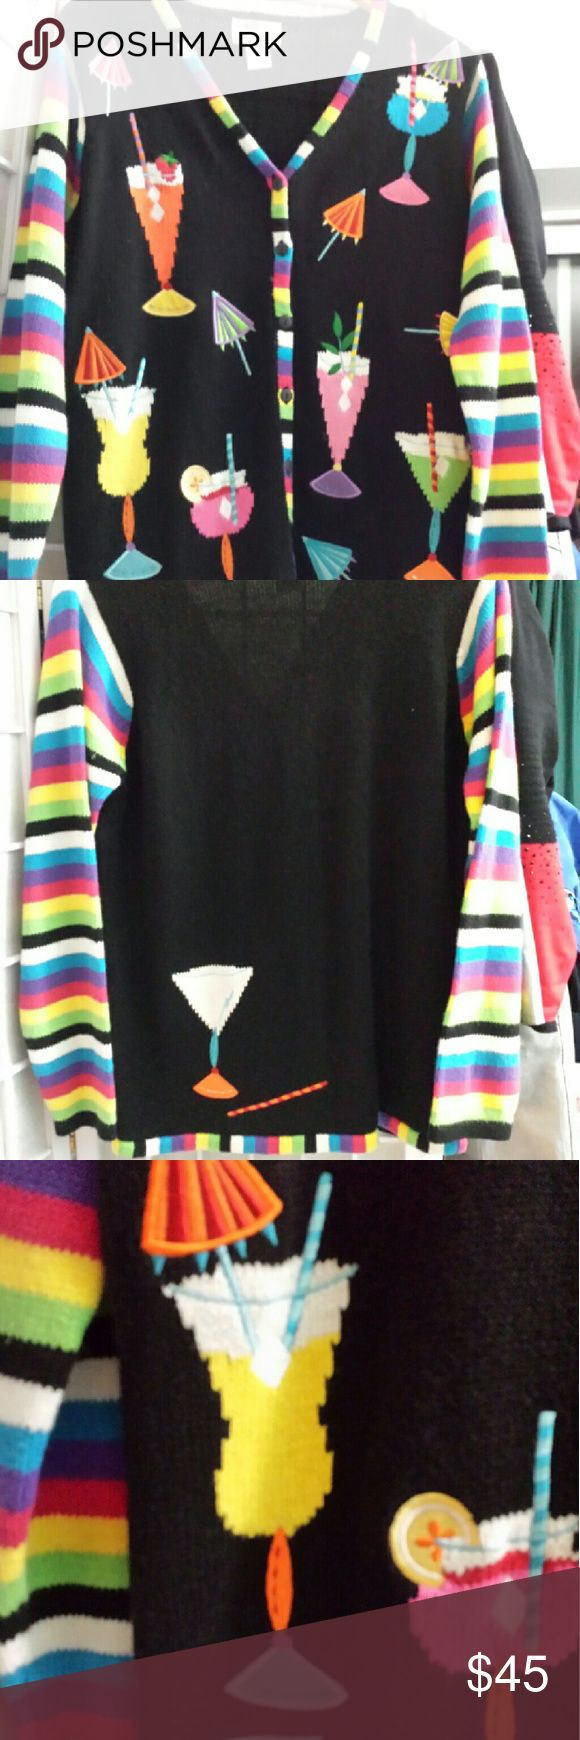 Quacker Factory Tropical Drink Sweater S Long sleeve cardigan made by Quacker Factory in size S.  Front is covered with tropical drinks, back has a cute cocktail on the lower left. All trim and Sleeves in rainbow stripes. Never worn. Quacker Factory Sweaters Cardigans